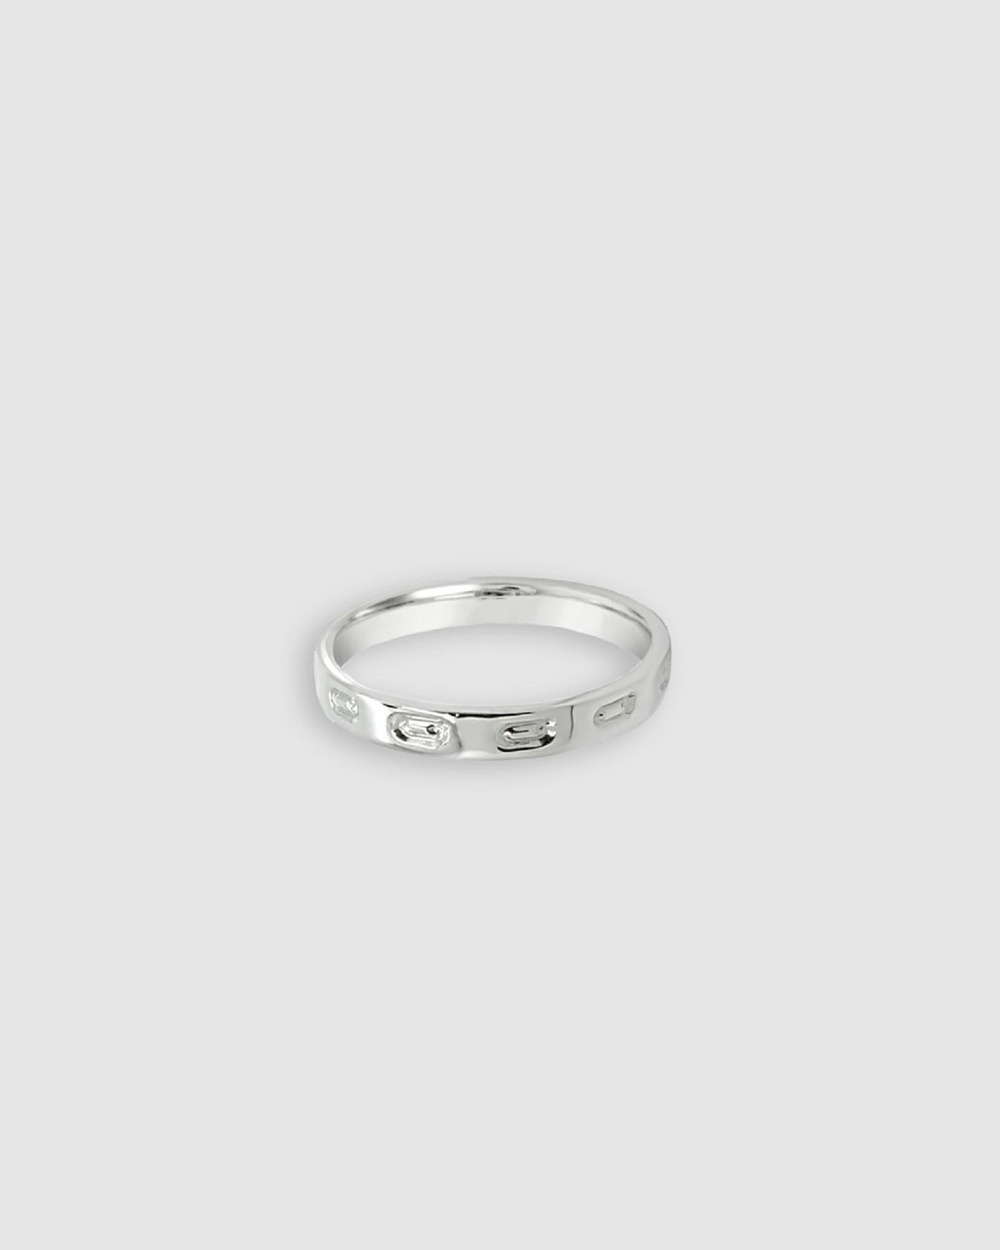 Ichu Personalised Letter Q Ring Jewellery Silver